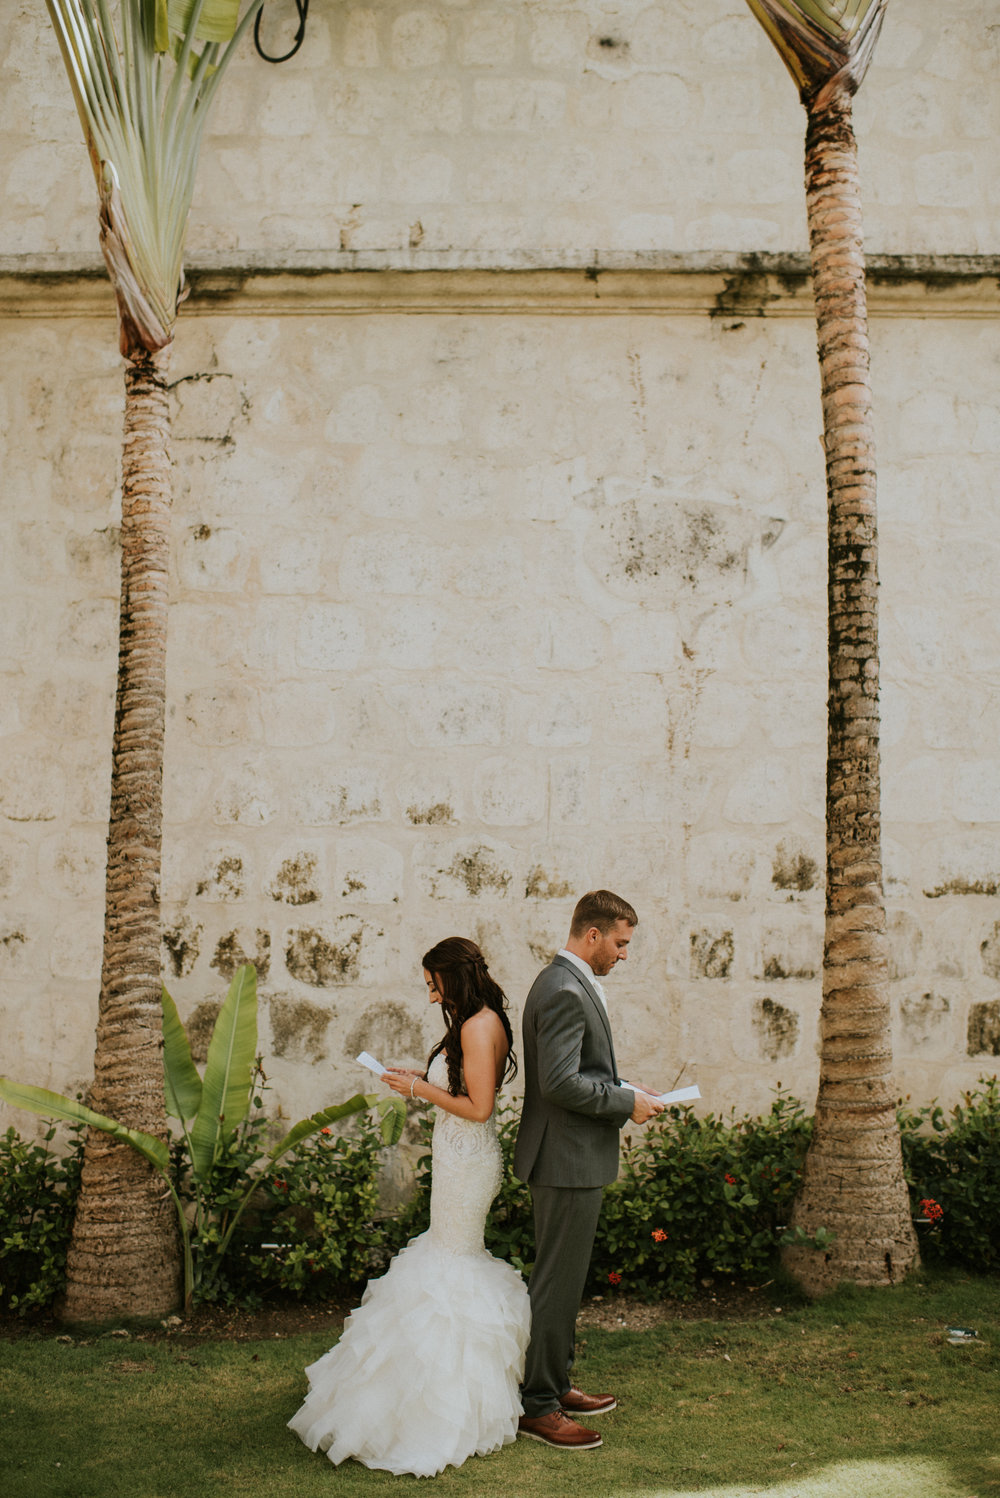 """BEST WEDDING PHOTOGRAPHER EVER""  Kamra shot both our engagement and wedding photos and we could not be happier! After initially scheduling with her, we changed our wedding date and location from a small town wedding in Washington in September, to a destination wedding in Punta Cana, Dominican Republic in July and she was more than willing to work with us to fit our now International destination into her busy schedule. This was the first time my husband and I had professional photos taken so we were a little nervous, but she made us both feel comfortable and made the experience a ton of fun!! Not only was Kamra great to travel with (she's so nice!), but our beach wedding photos turned out absolutely stunning! She even woke up at 4am on the day of our wedding to take sunrise photos on the beach! I completely recommend Kamra as a photographer for your wedding! She's going to make you feel comfortable, she's extremely responsive to anything you may need, provides great insight, and she's going to deliver stunning photos.   Thank you, Kamra!  - Amanda + Sean, 2018, Punta Cana, Dominican Republic"